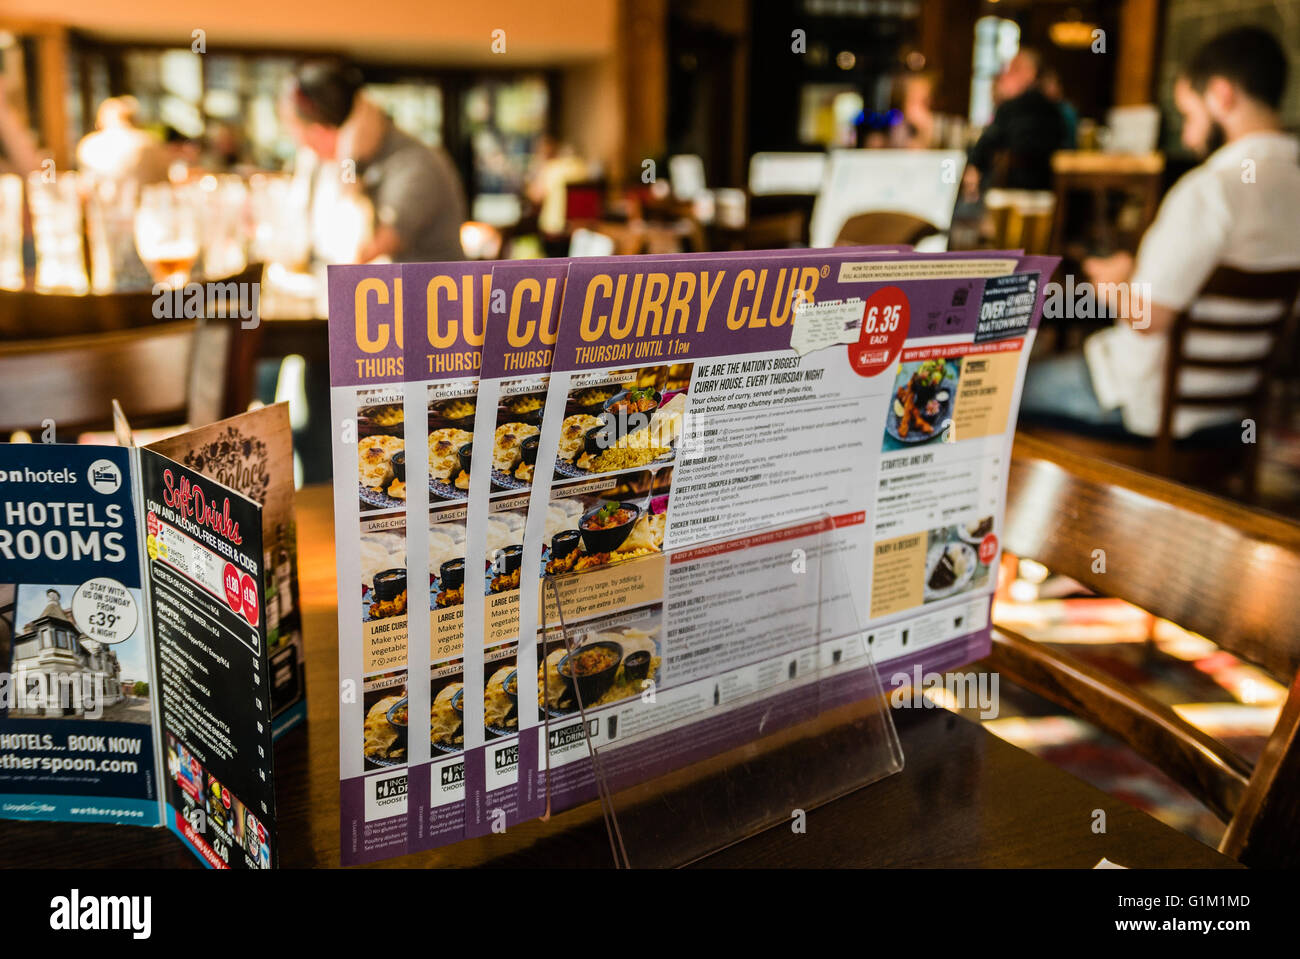 Curry Club menu on a table in a Wetherspoon's pub/restaurant, available every Thursday. - Stock Image